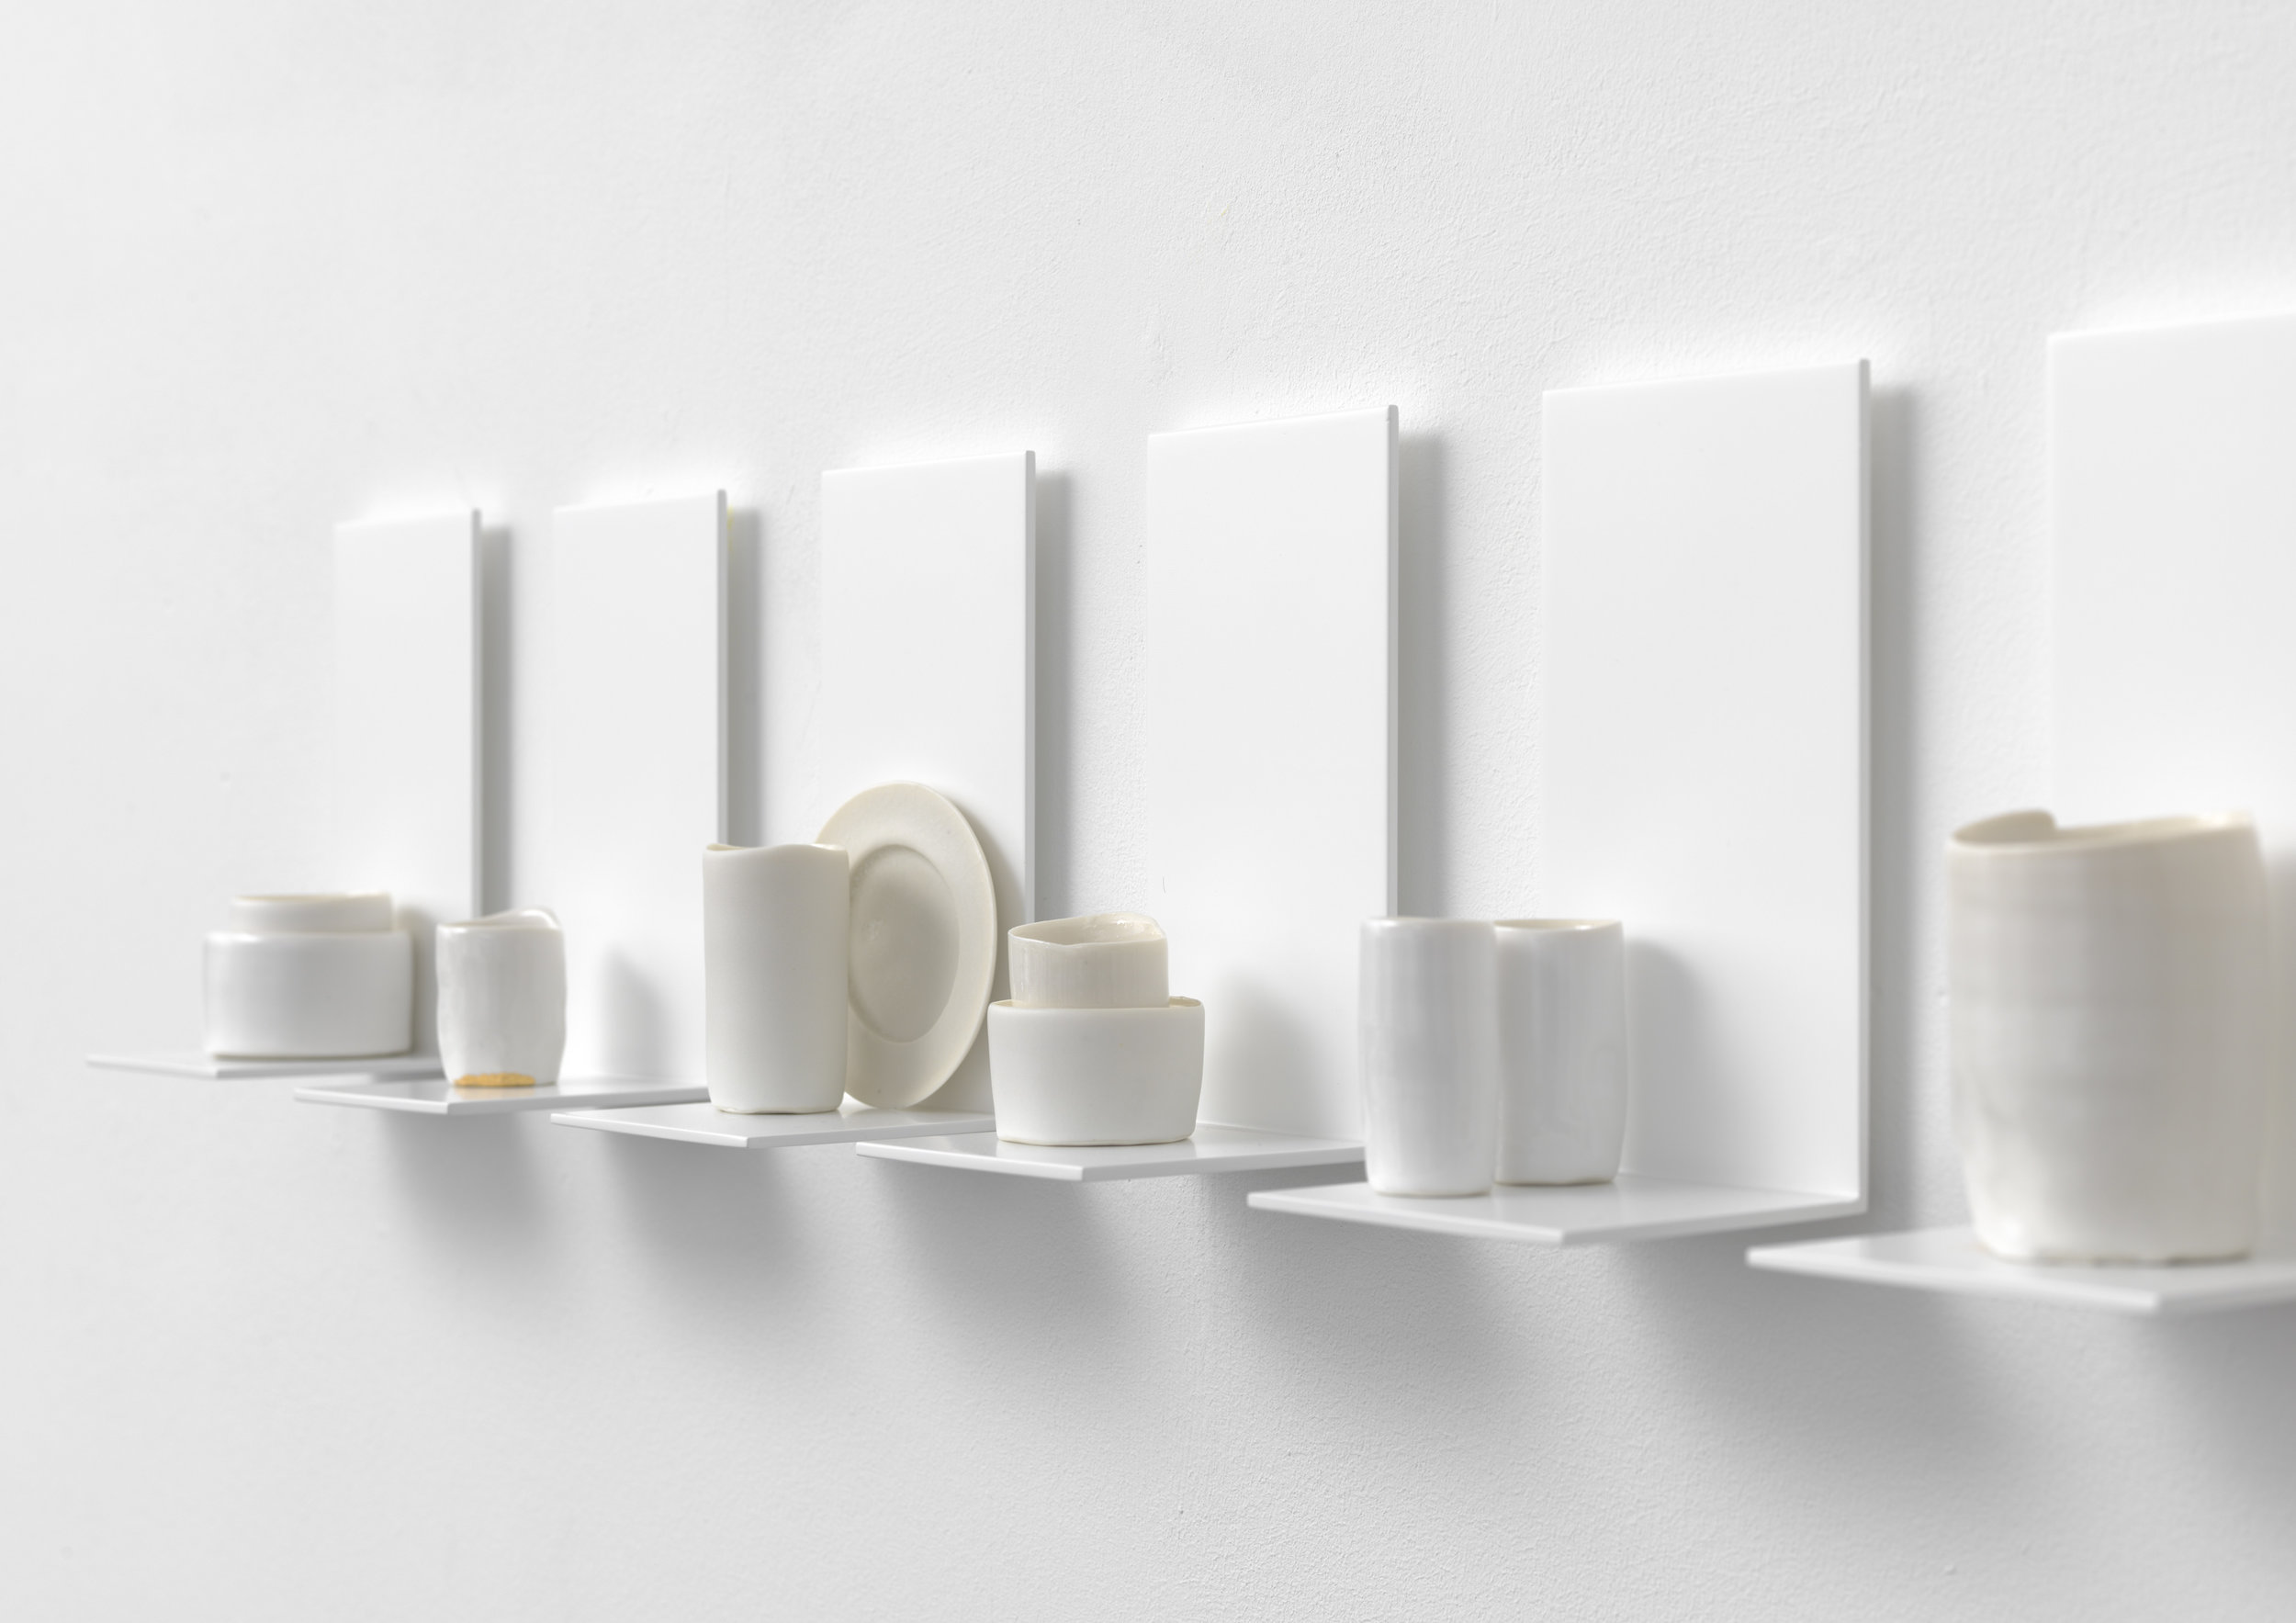 Edmund de Waal, The Nothing That Is (Image courtesy of the Artist)